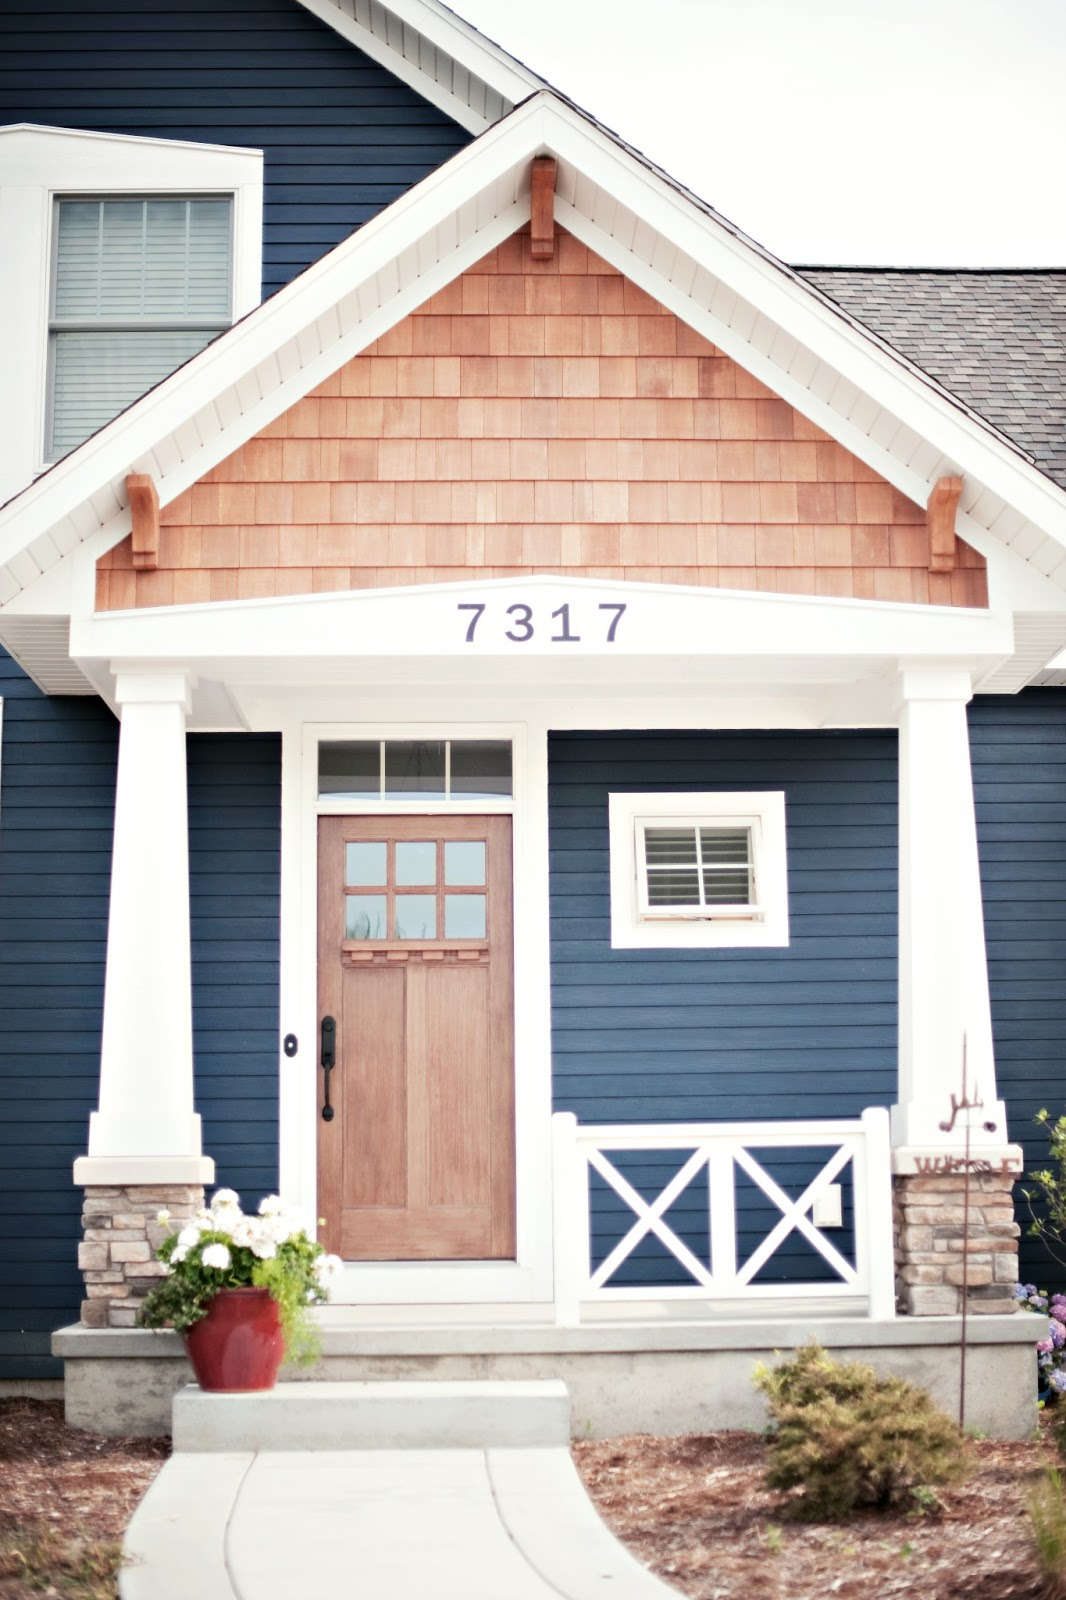 Lisa mende design best navy blue paint colors 8 of my favs for House paint color exterior